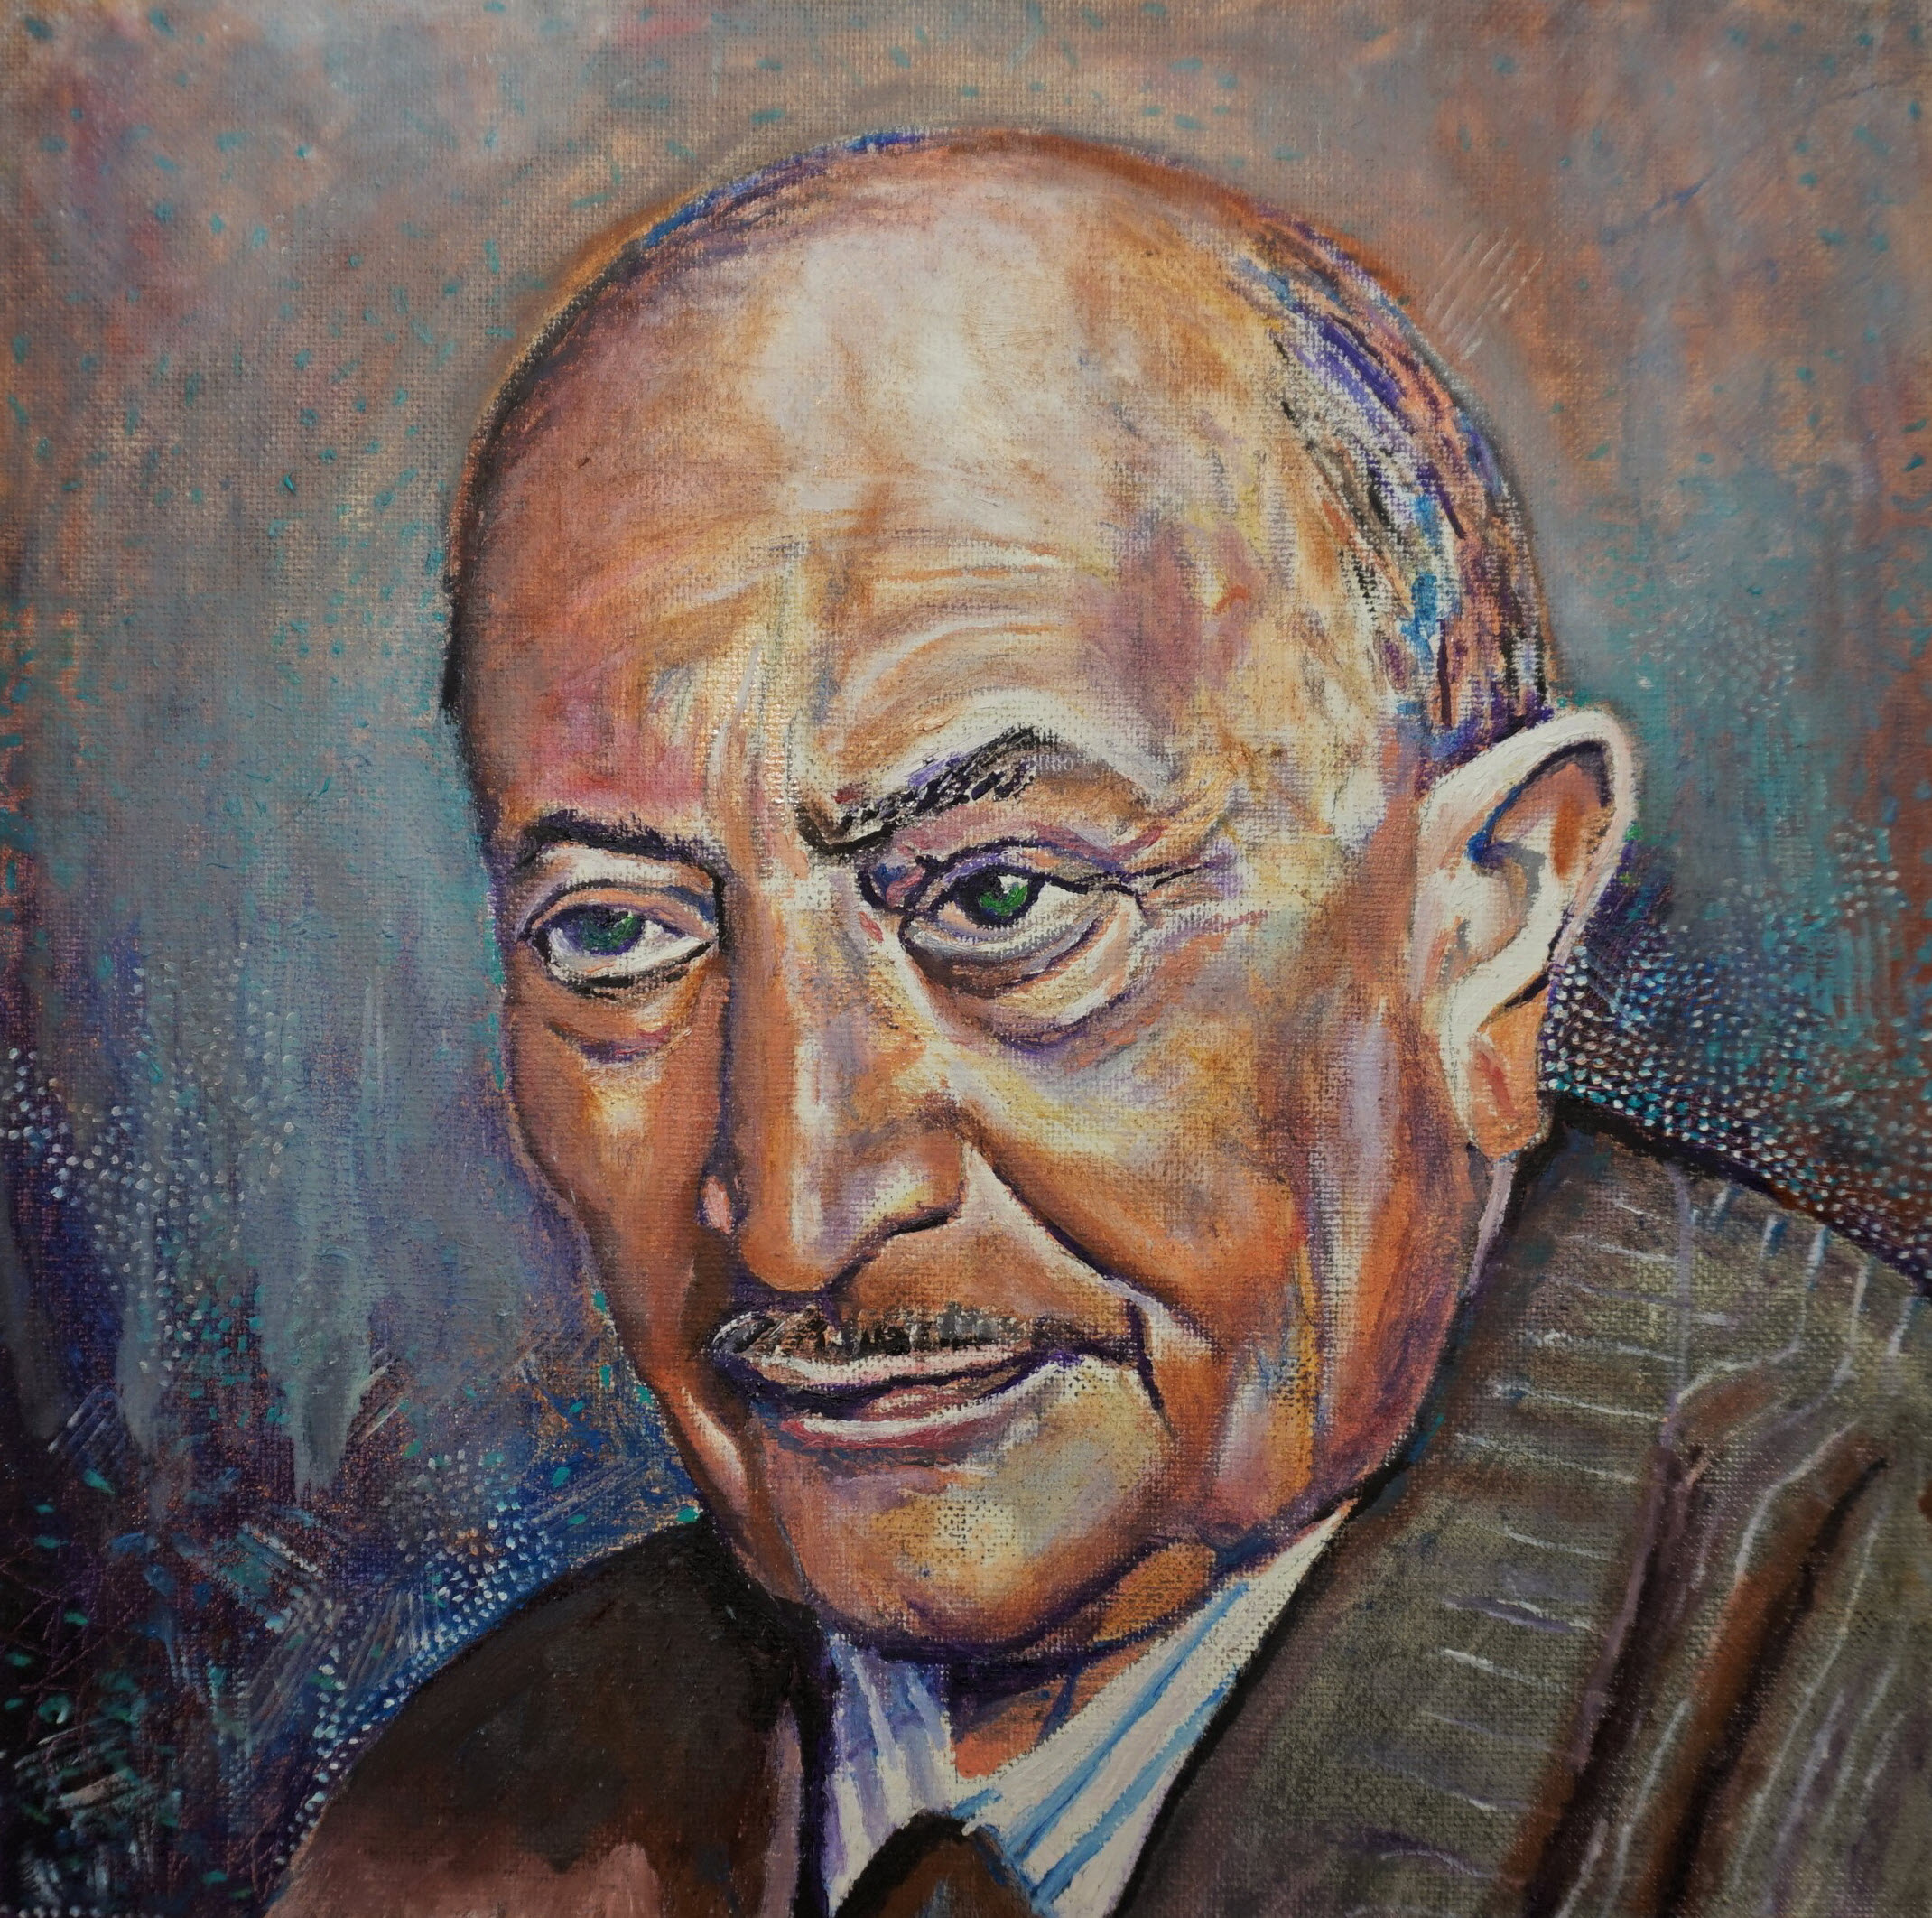 Survivor, Researcher, Simon Wiesenthal